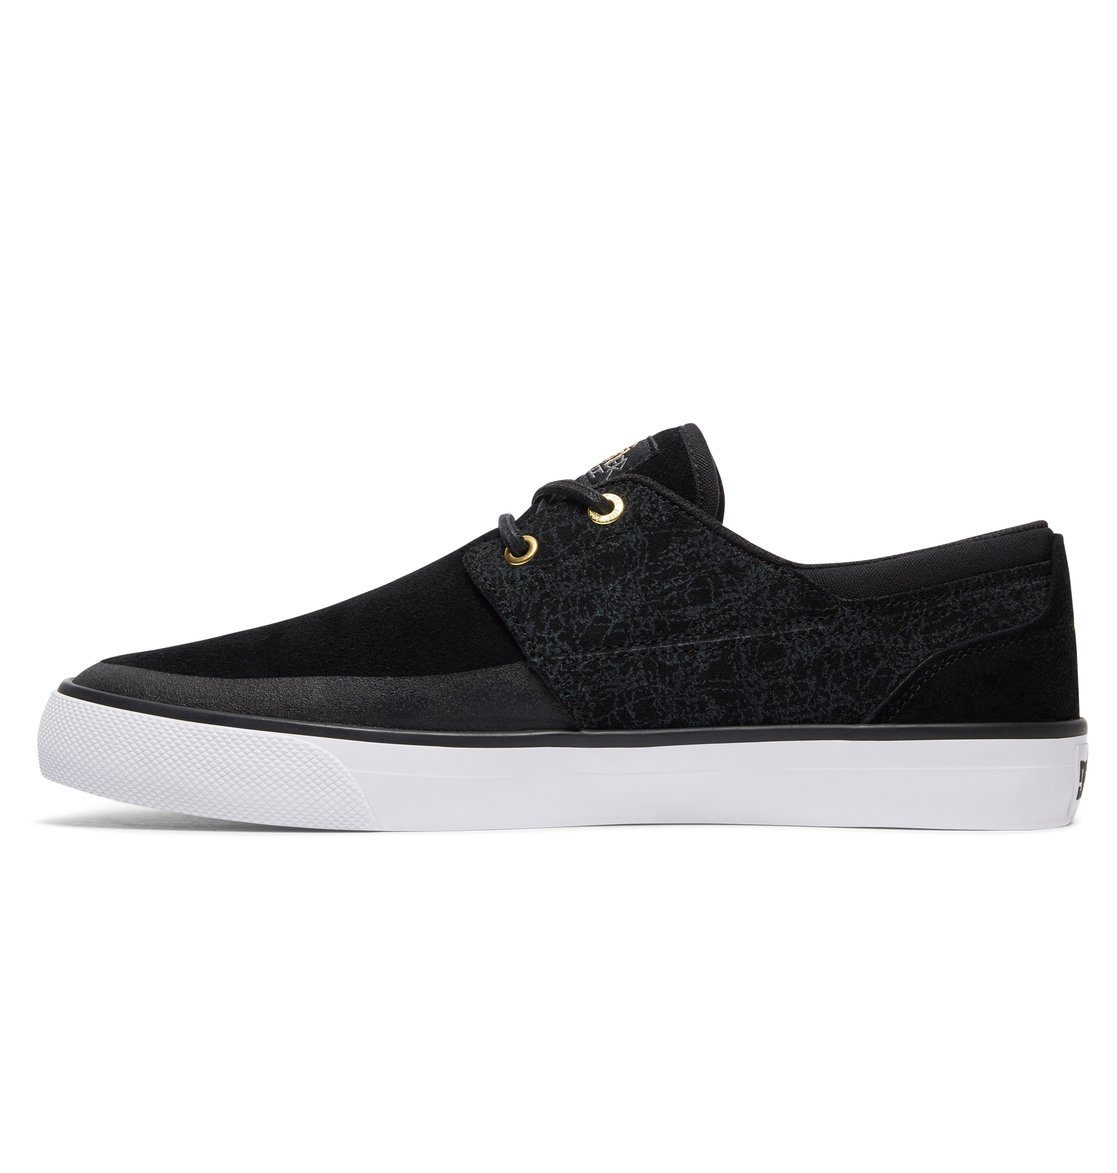 DC Shoes Wes Kremer 2 X Sk8Mafia - Shoes - Zapatos - Hombre - EU 46